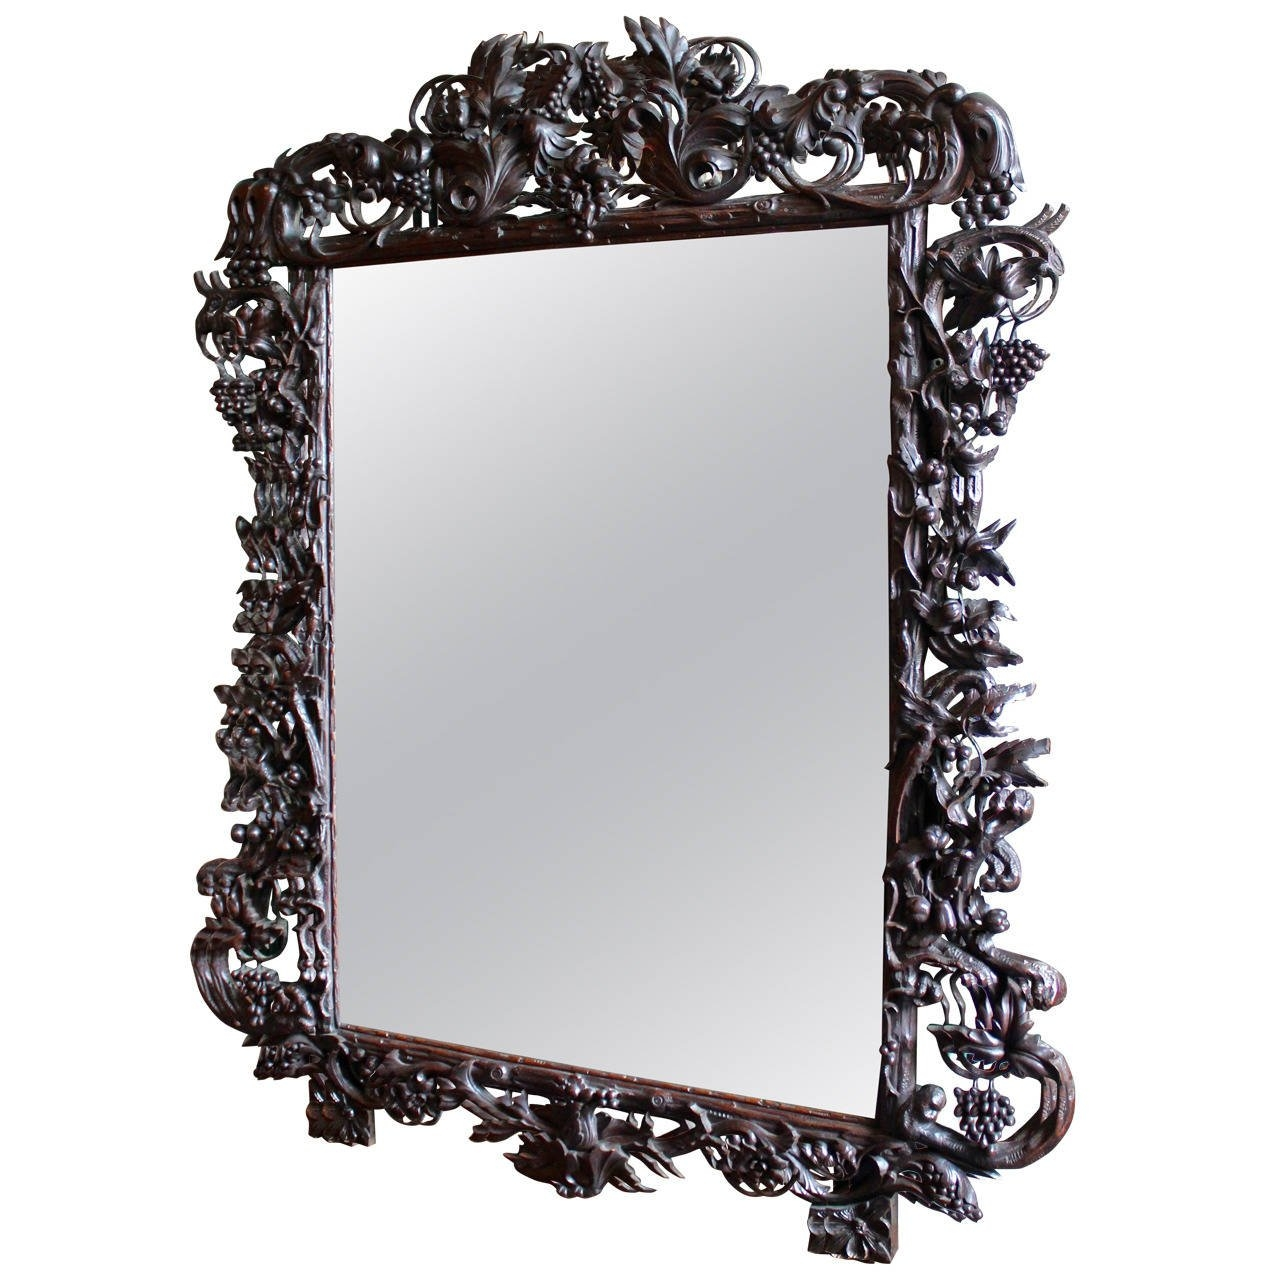 Late 19th Century Ornate Large Black Forest French Mirror At 1stdibs Within Large Black Ornate Mirror (Image 11 of 15)